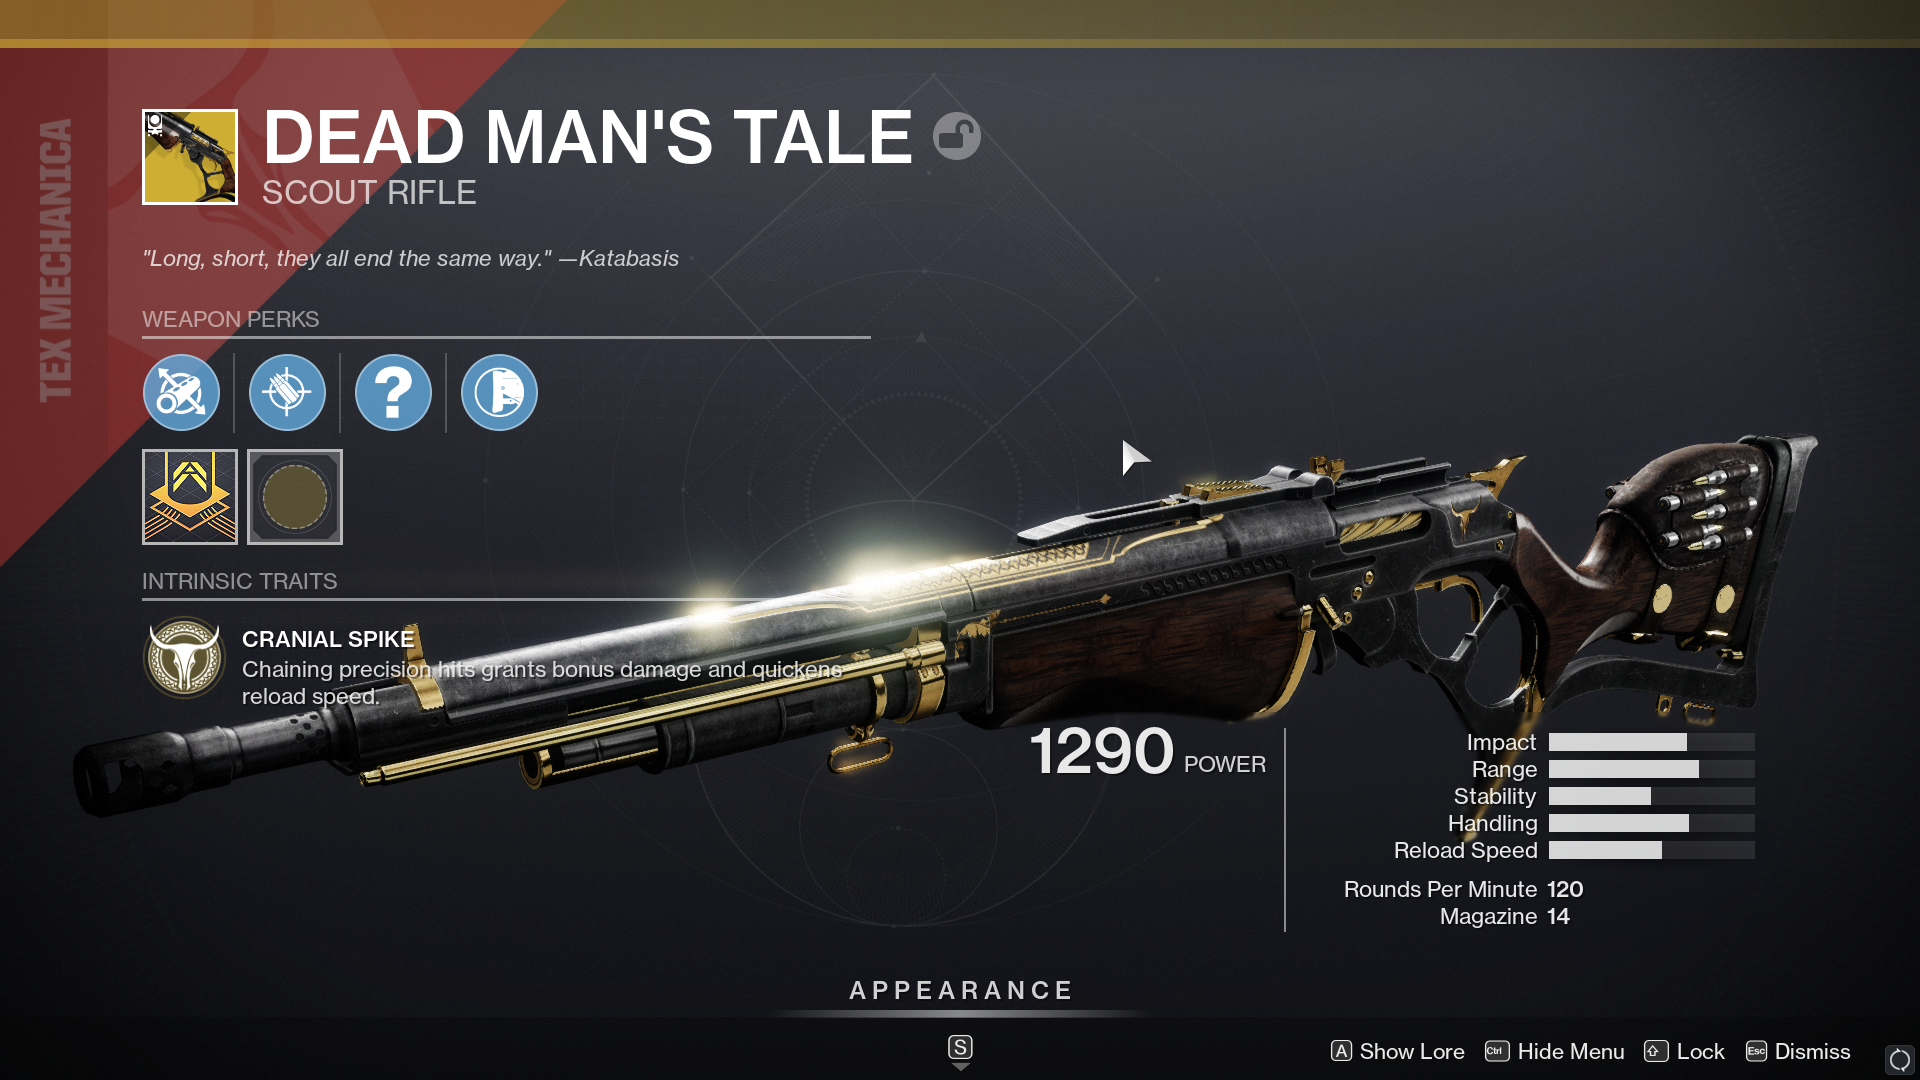 The Dead Man's Tale exotic scout rifle in Destiny 2